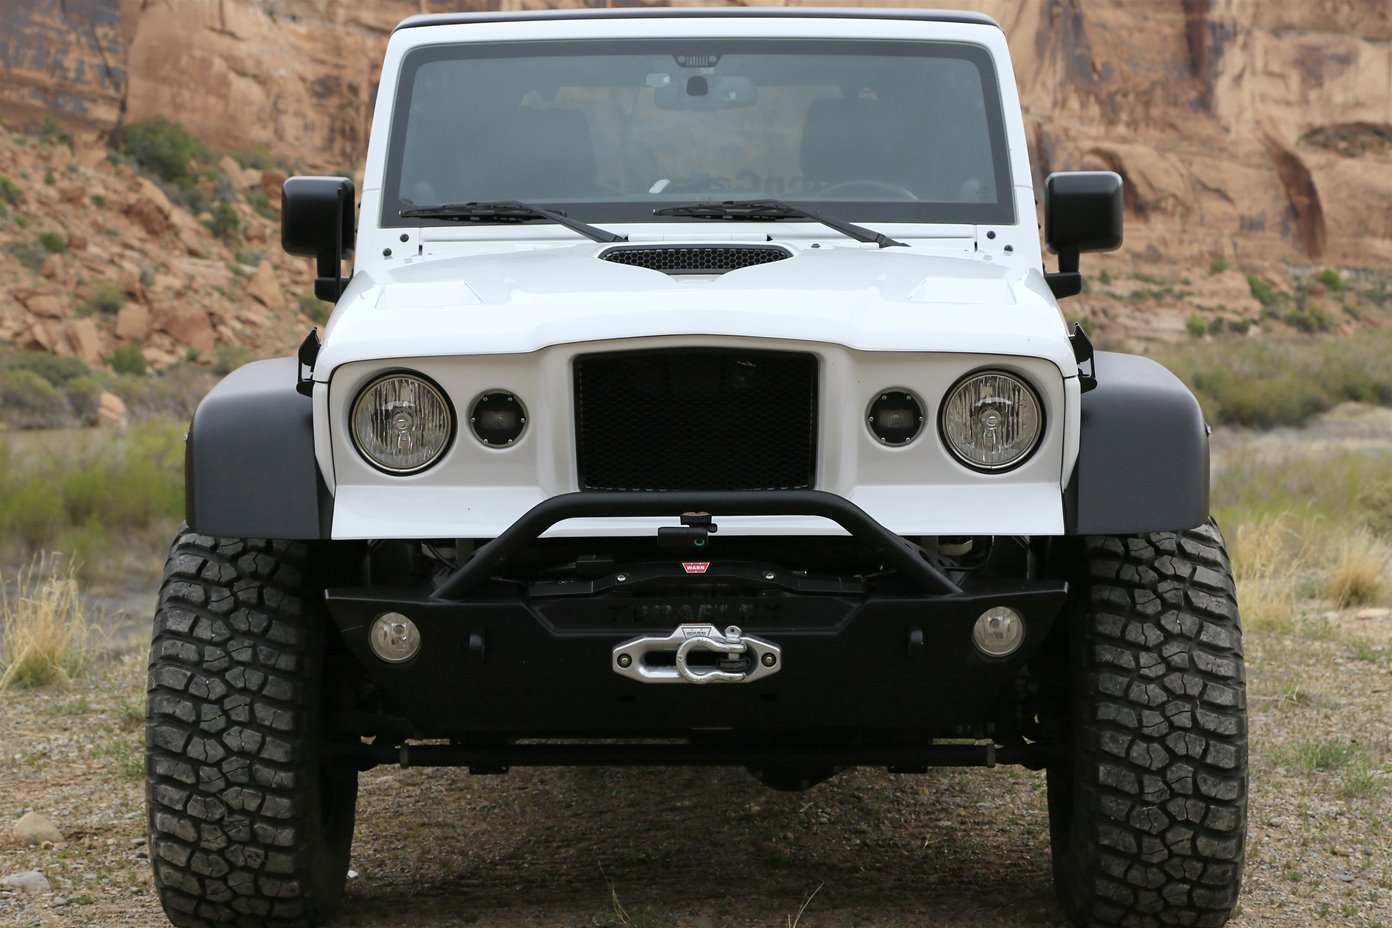 Jeep 174 Jk Wrangler M715 169 Front Clip Kit By Thaler Design